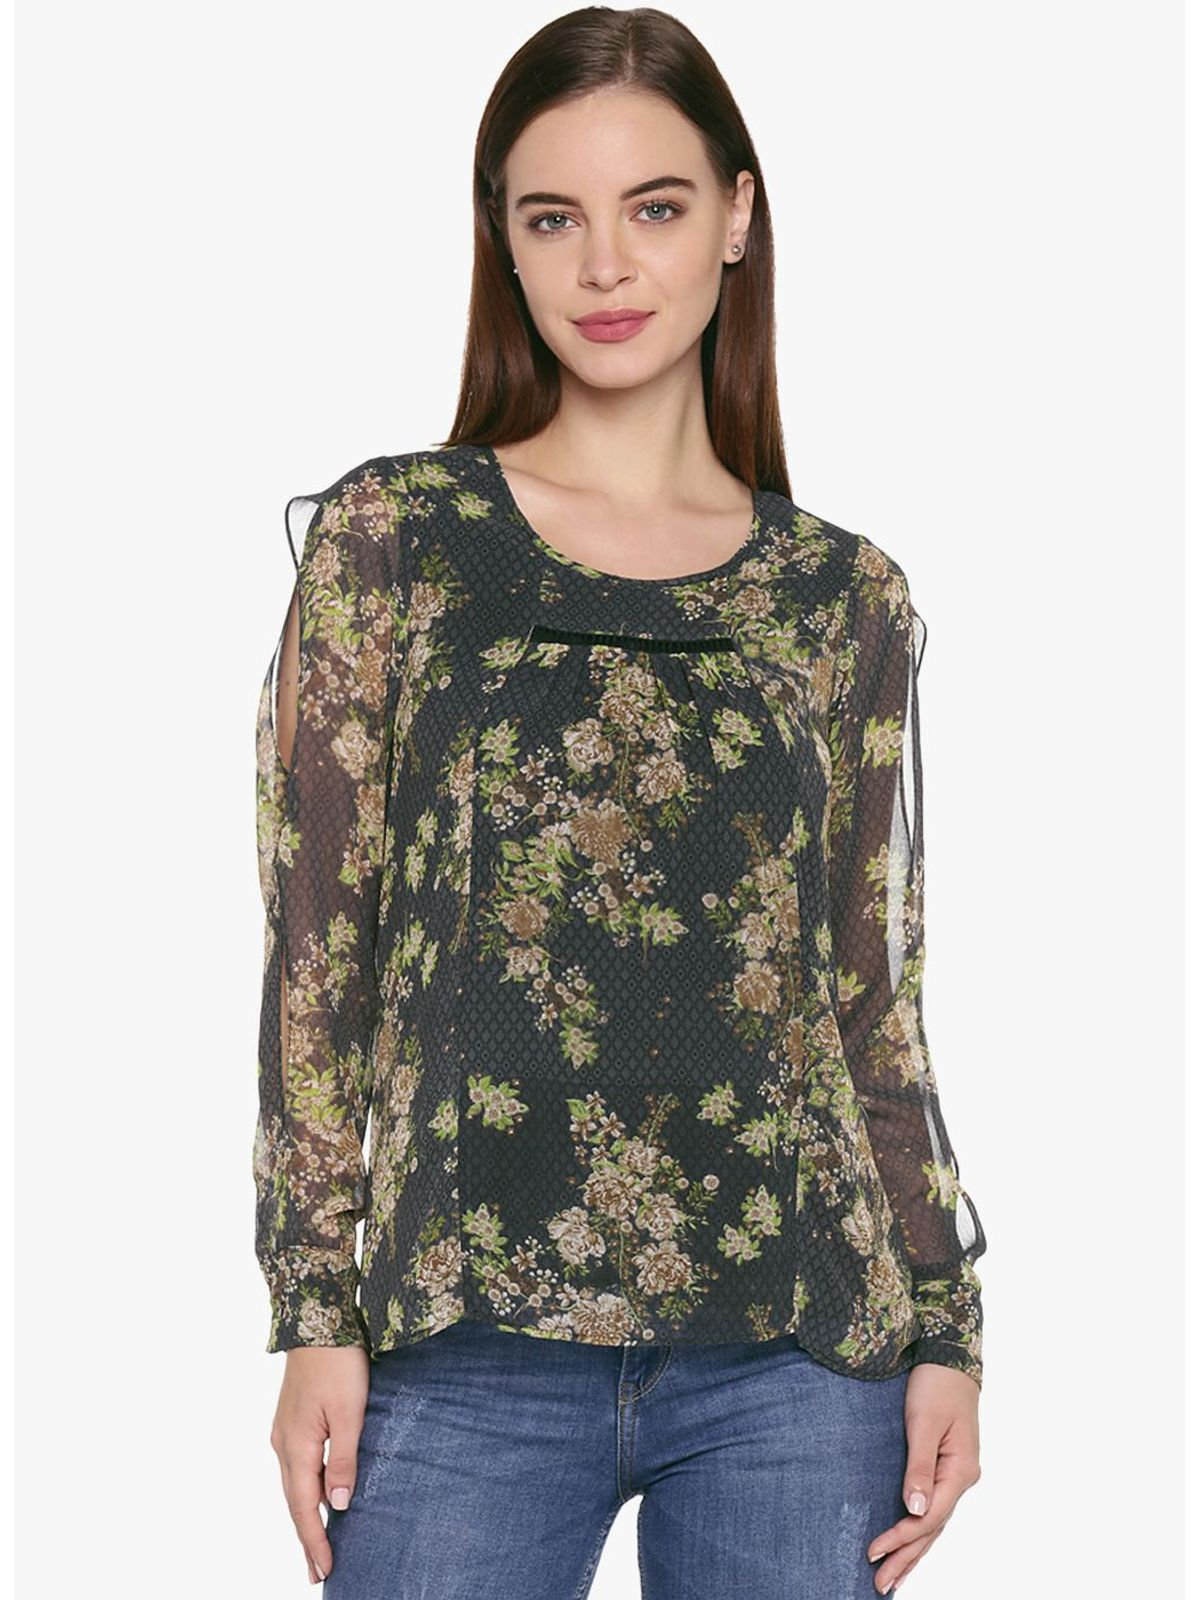 MIRANDA PRINTED CUTOUT TOP